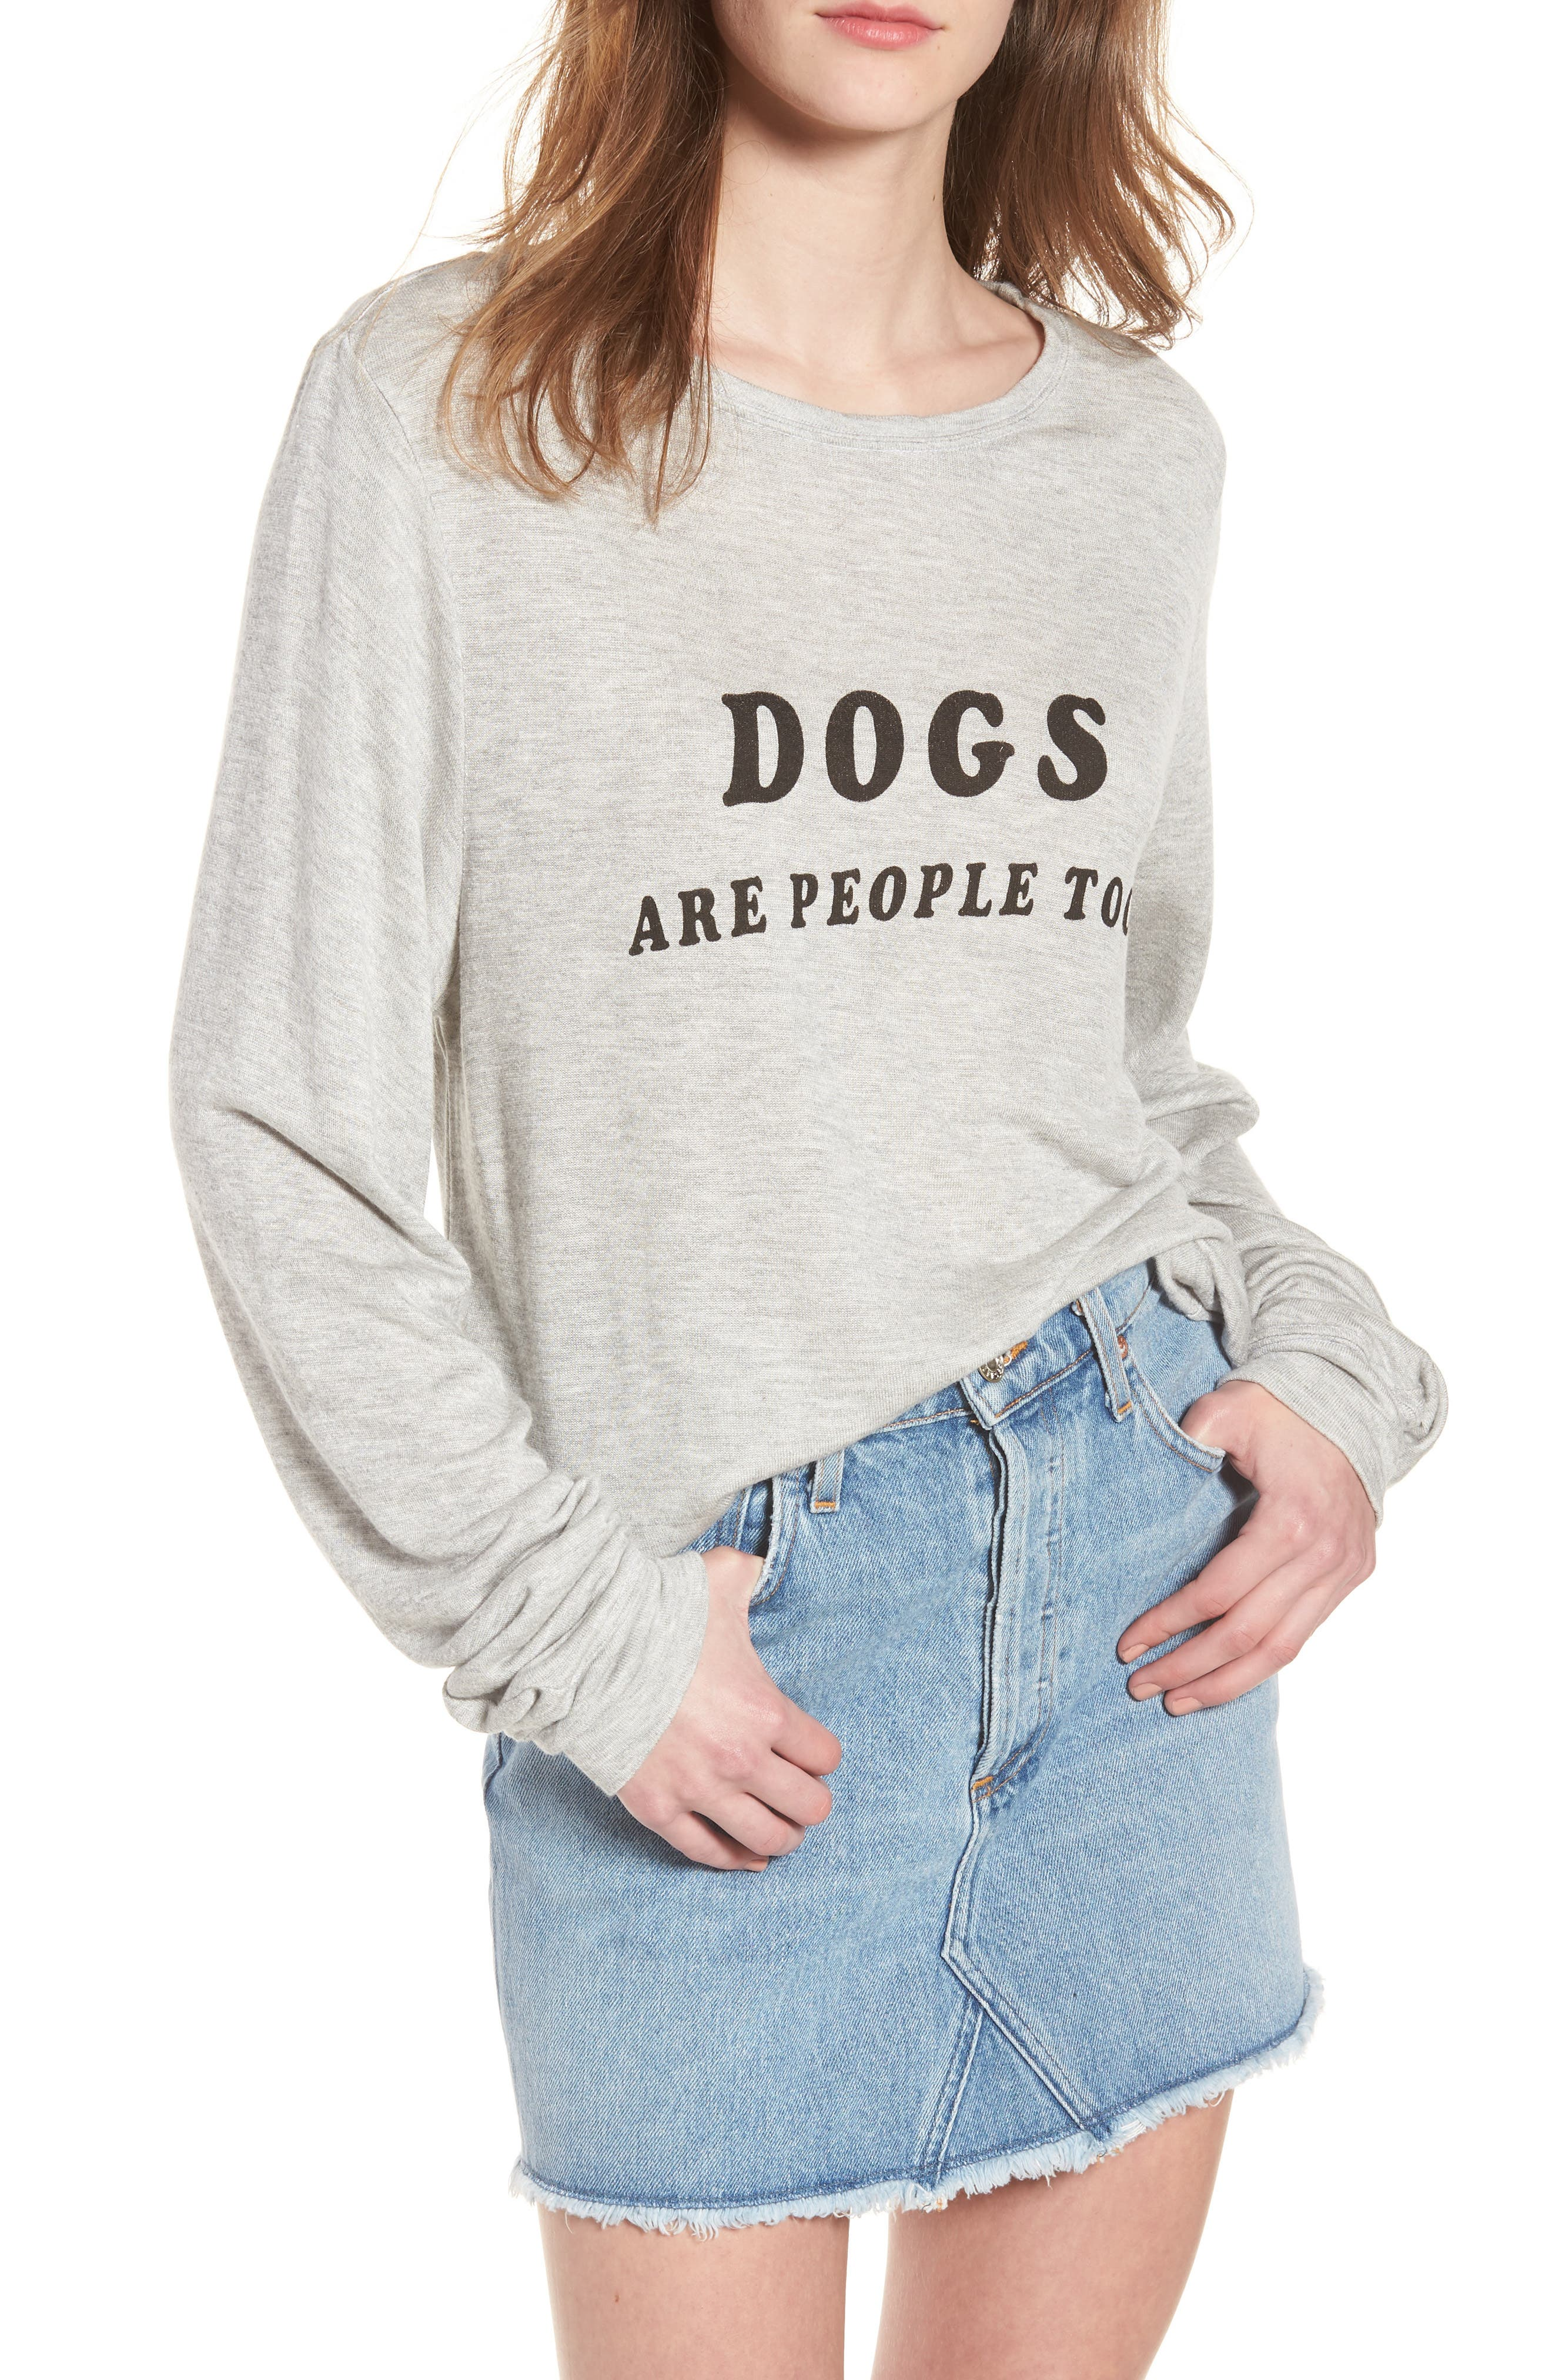 Dogs - Baggy Beach Jumper Pullover,                         Main,                         color, Heather